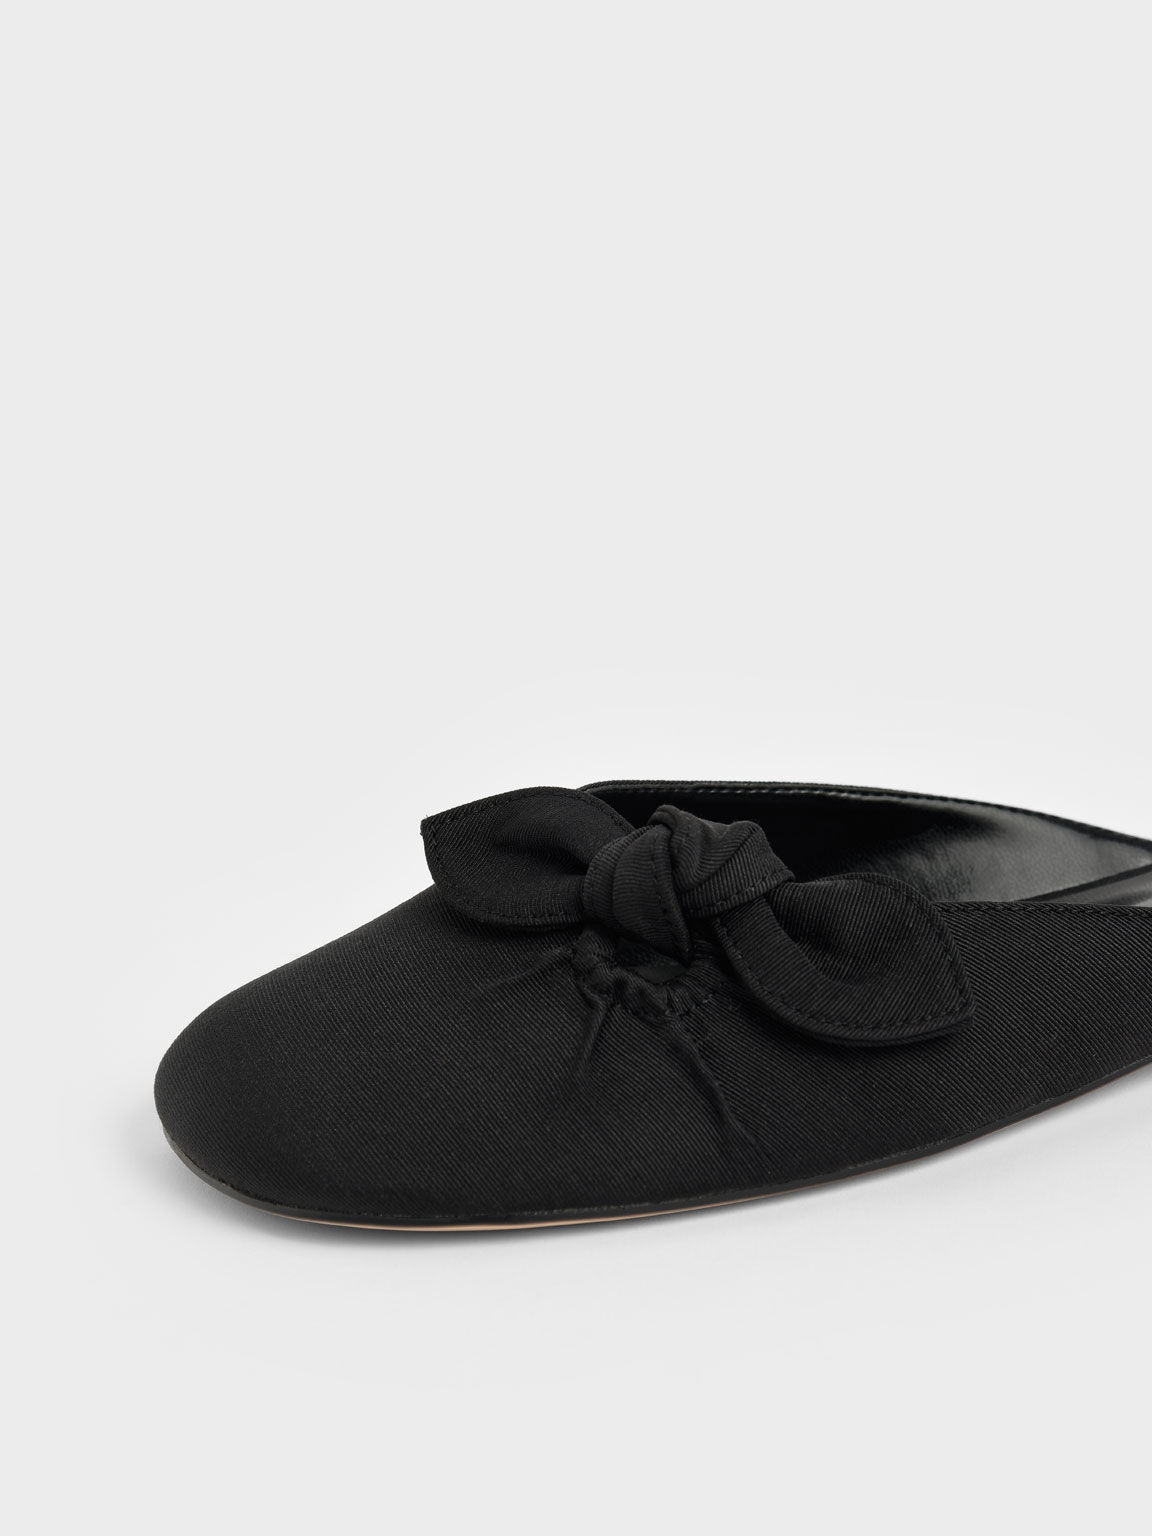 Knotted Fabric Mules, Black, hi-res